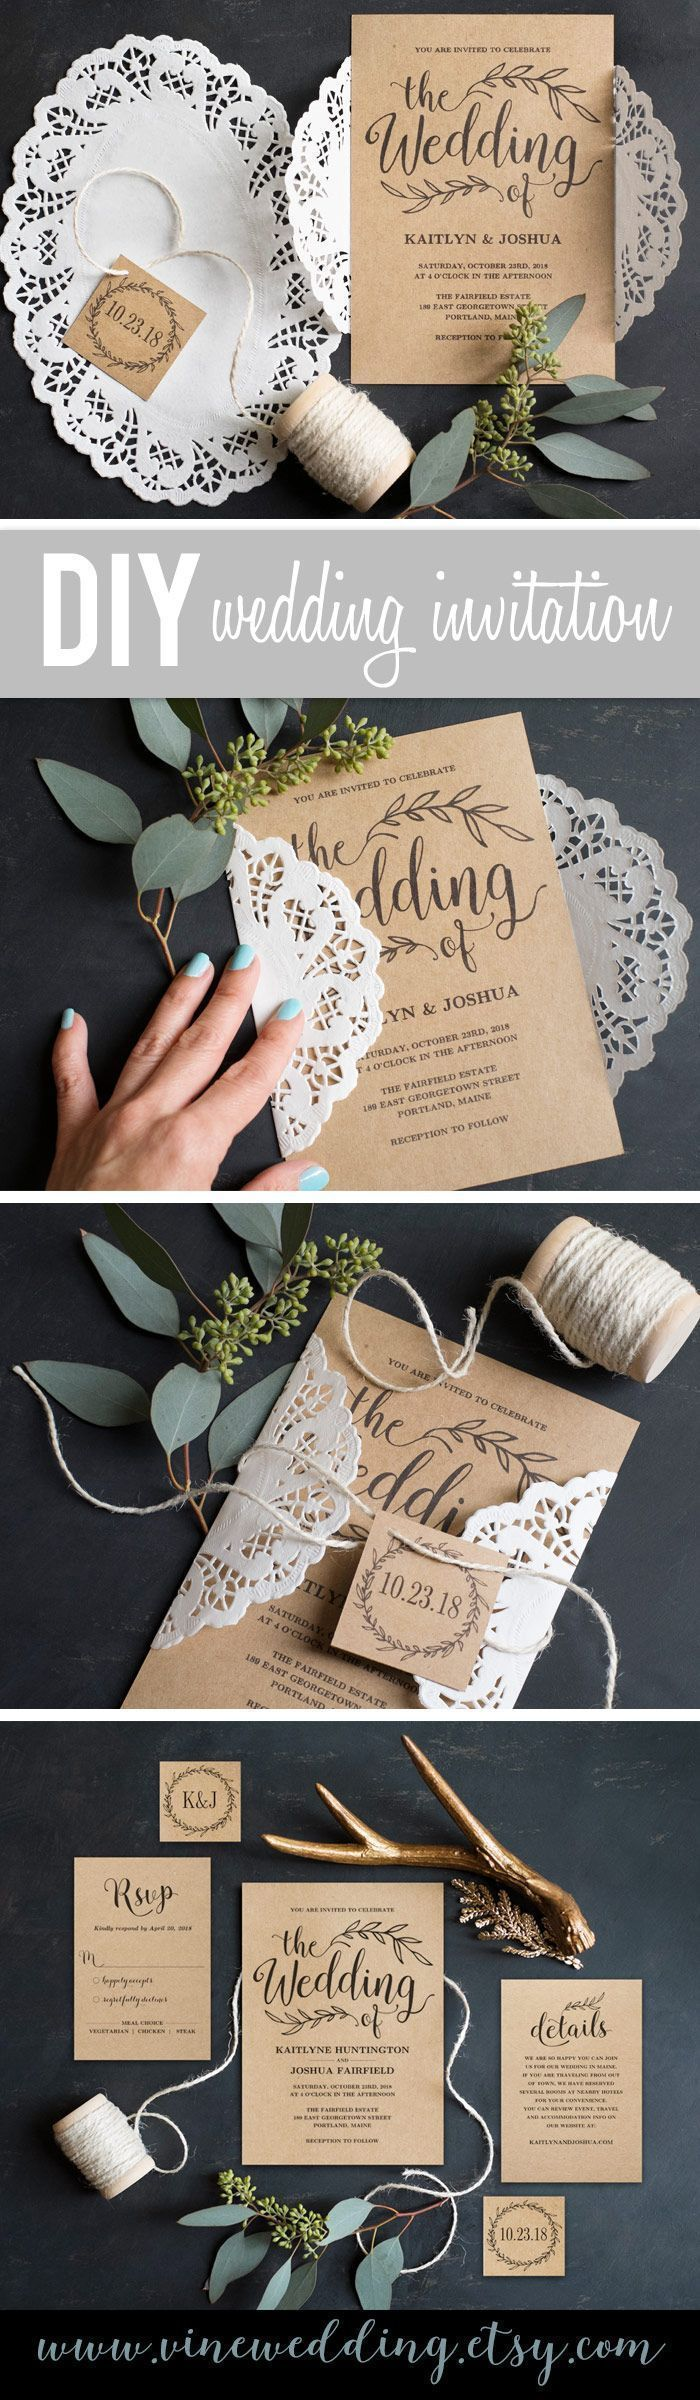 wedding invitations east london south africa%0A Wedding Invitations  weddinginvitations